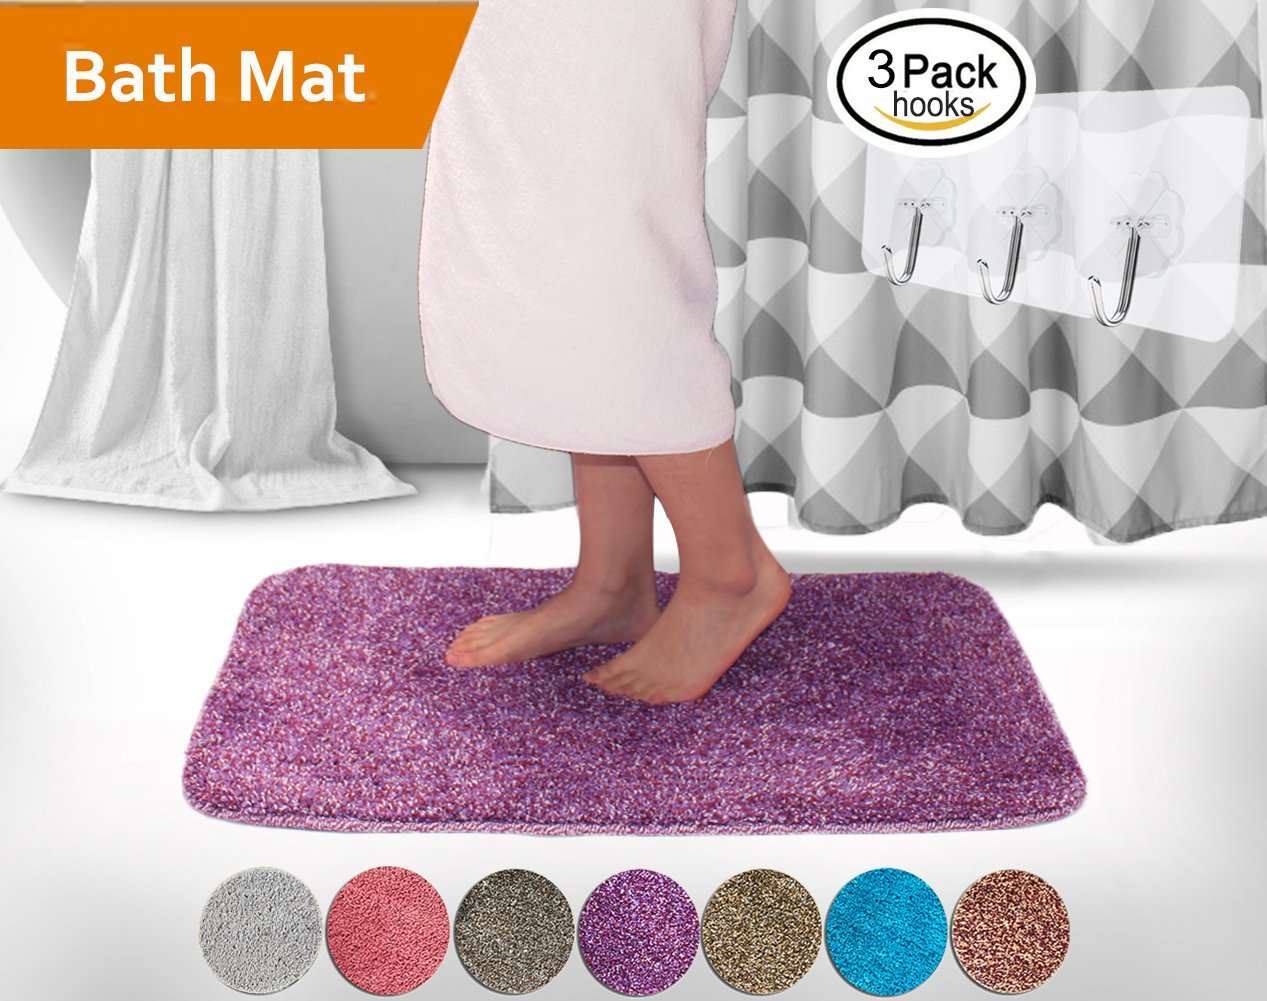 Soft Non slip High Absorbent Bathroom Mats Purple with Red free Wall Hooks 3 Pack